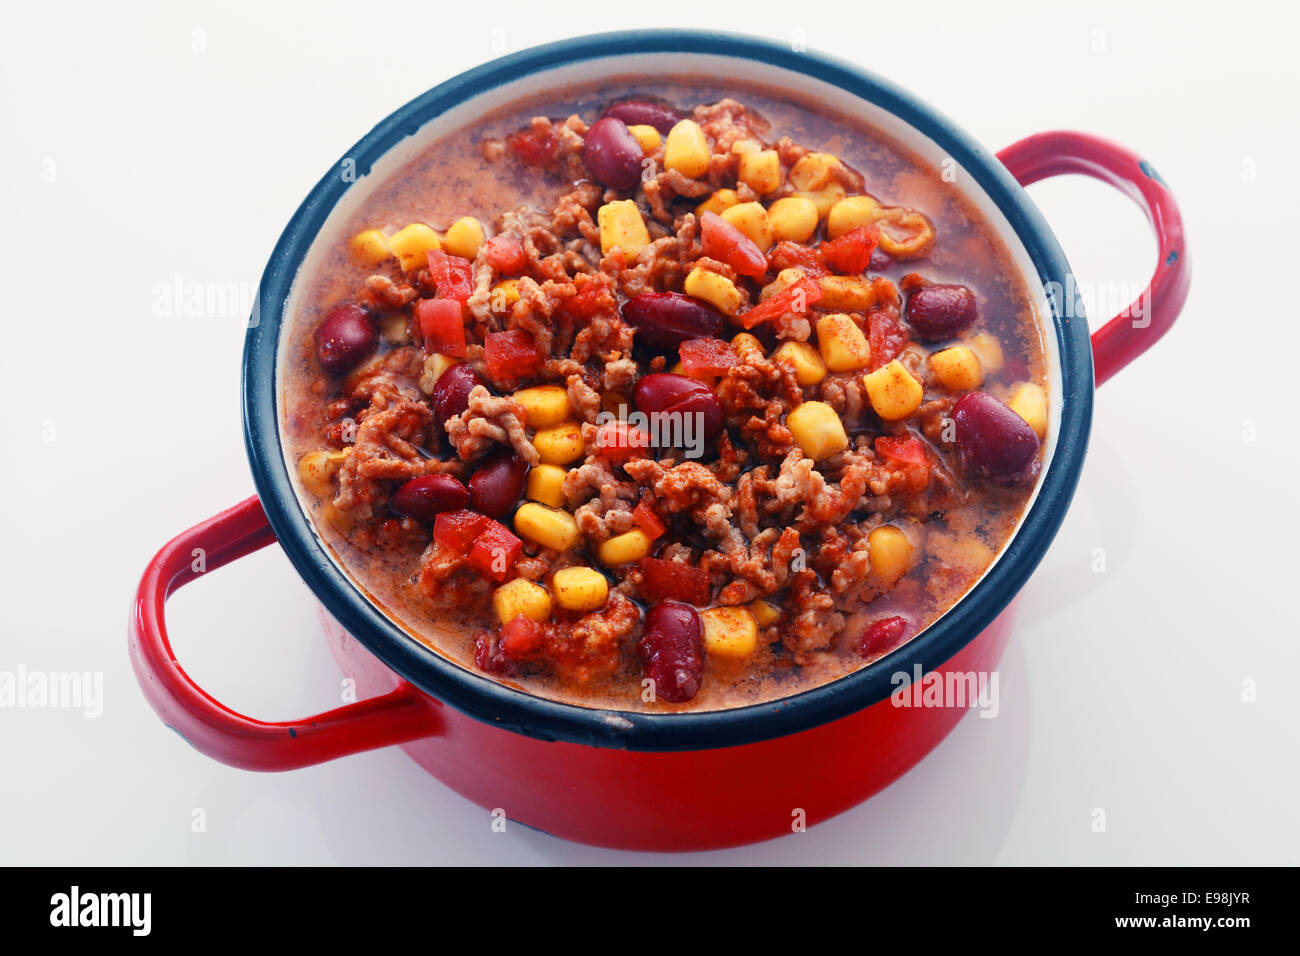 Close Tasty Main Dish Recipe on Red Pot Isolated on White Background. - Stock Image